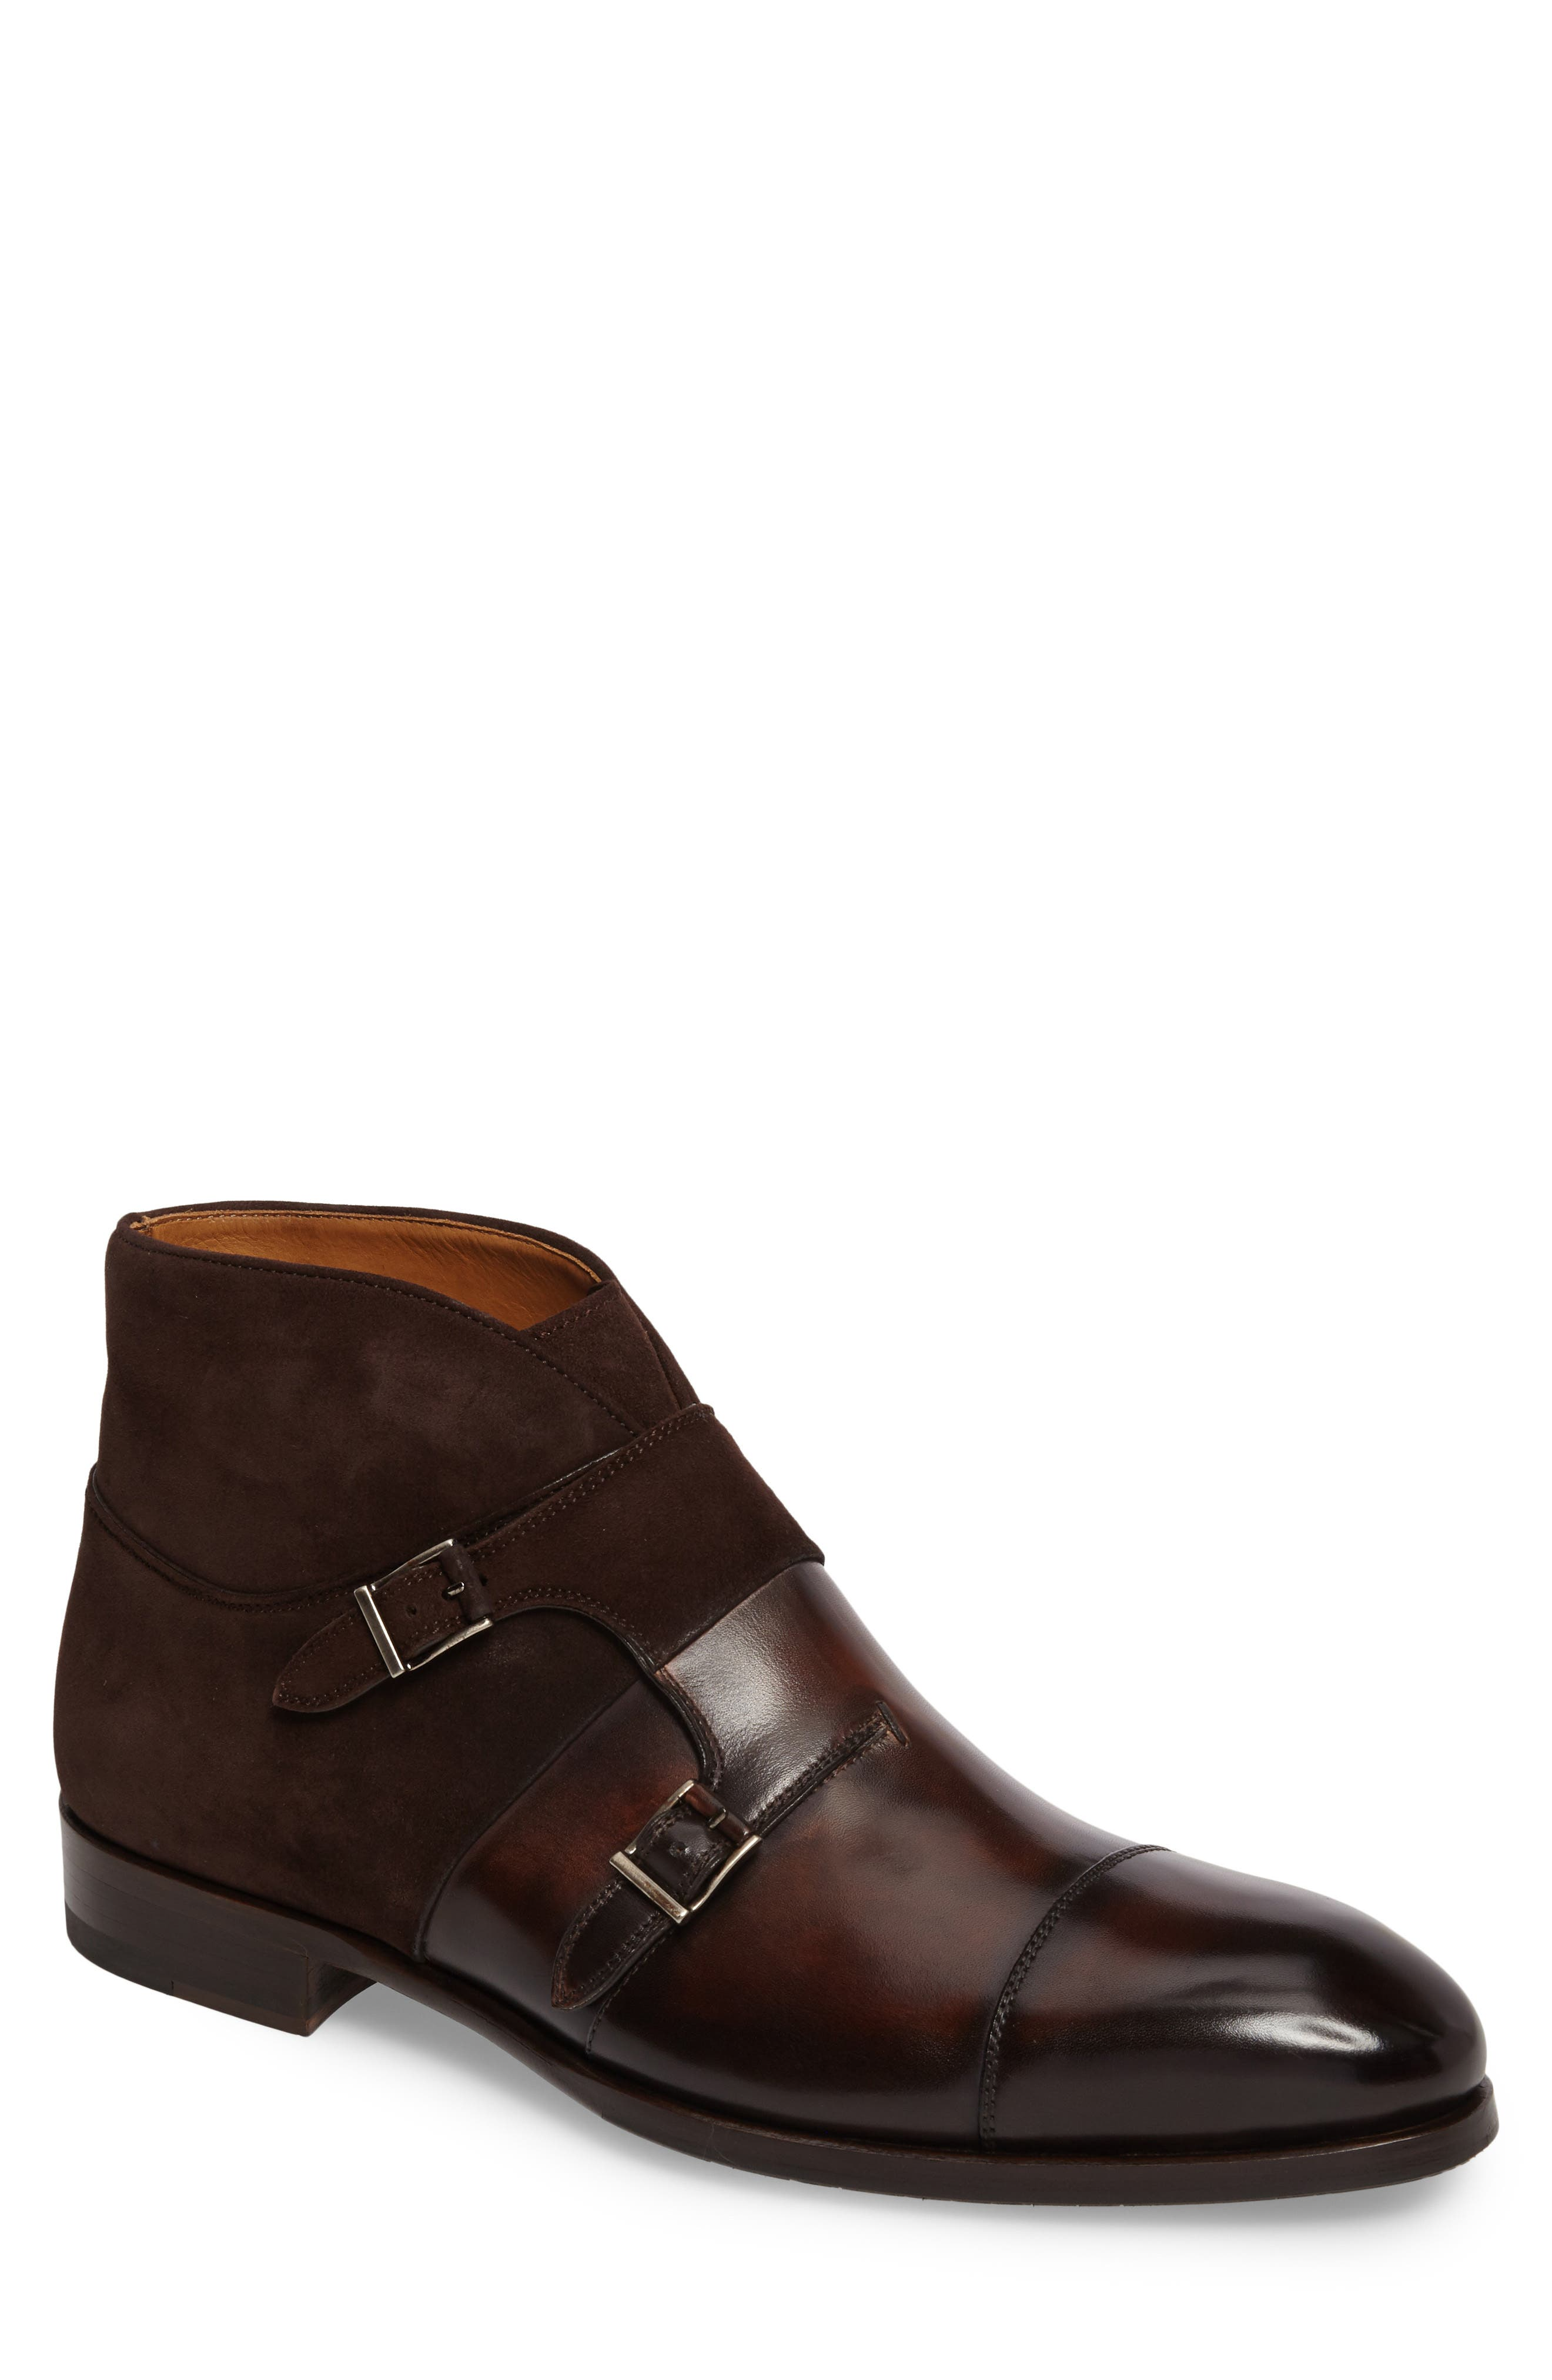 Alternate Image 1 Selected - Magnanni Octavian Double Monk Strap Boot (Men)